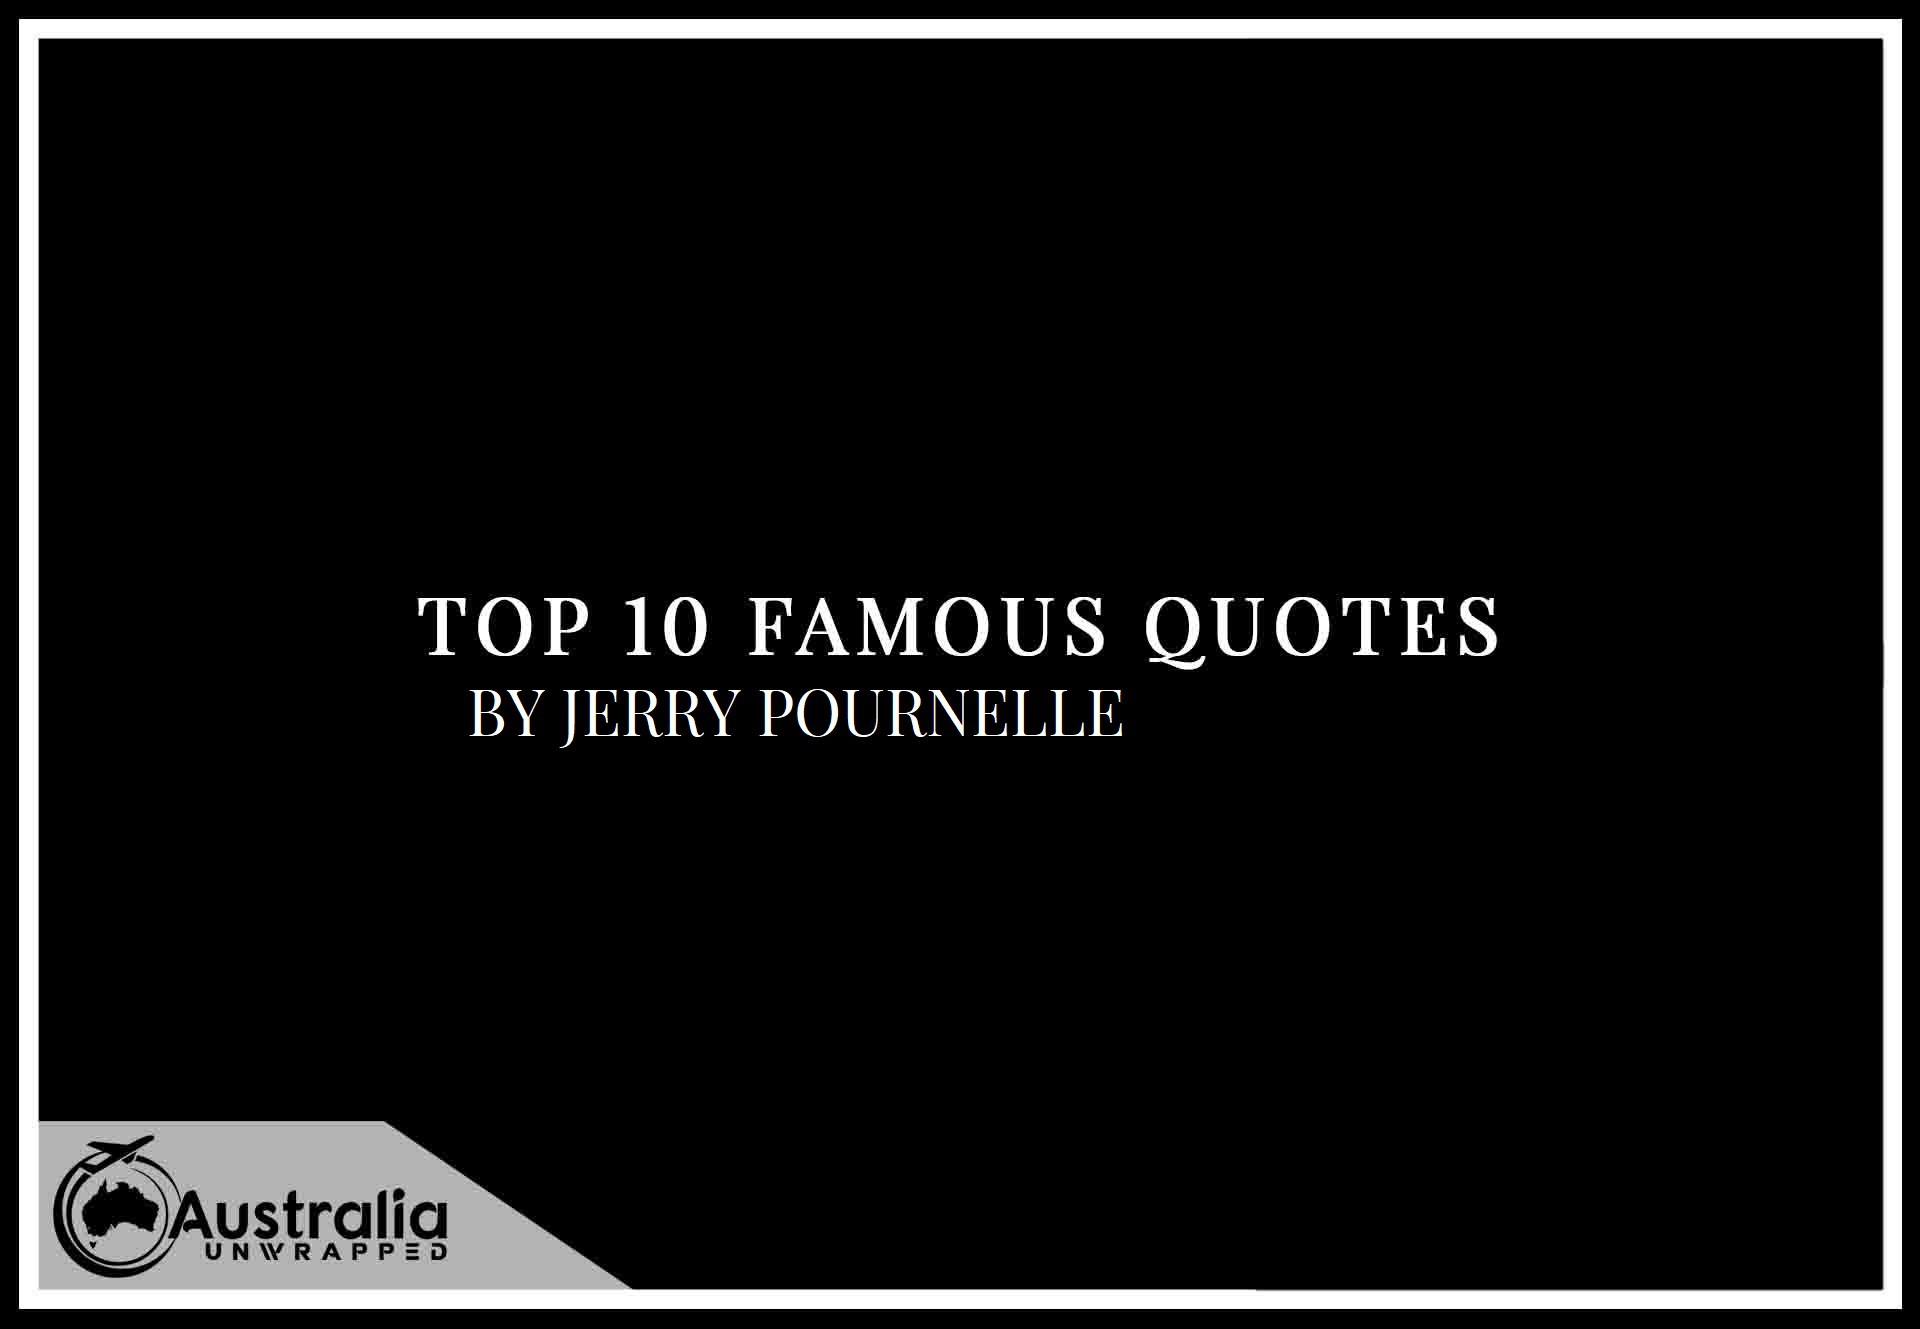 Top 10 Famous Quotes by Author Jerry Pournelle